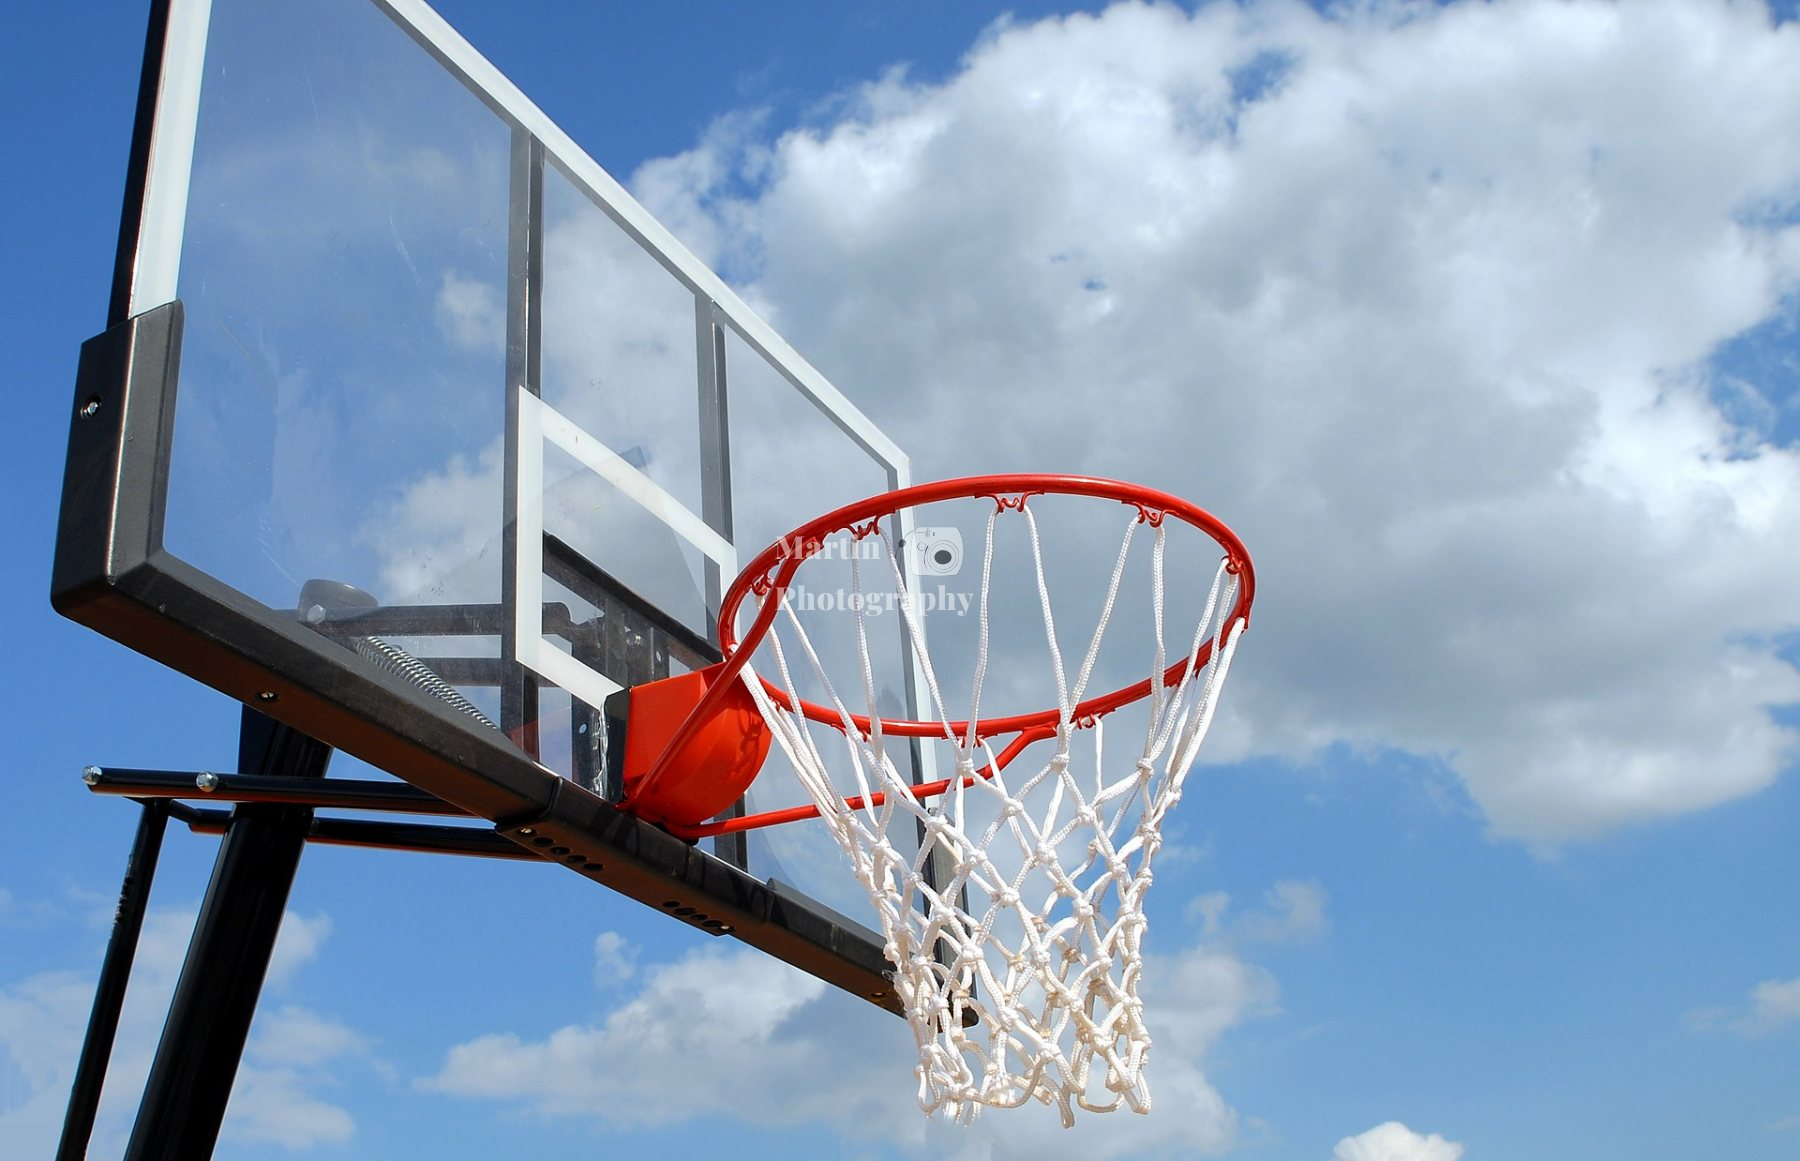 outdoor-basketball-1639860_1920